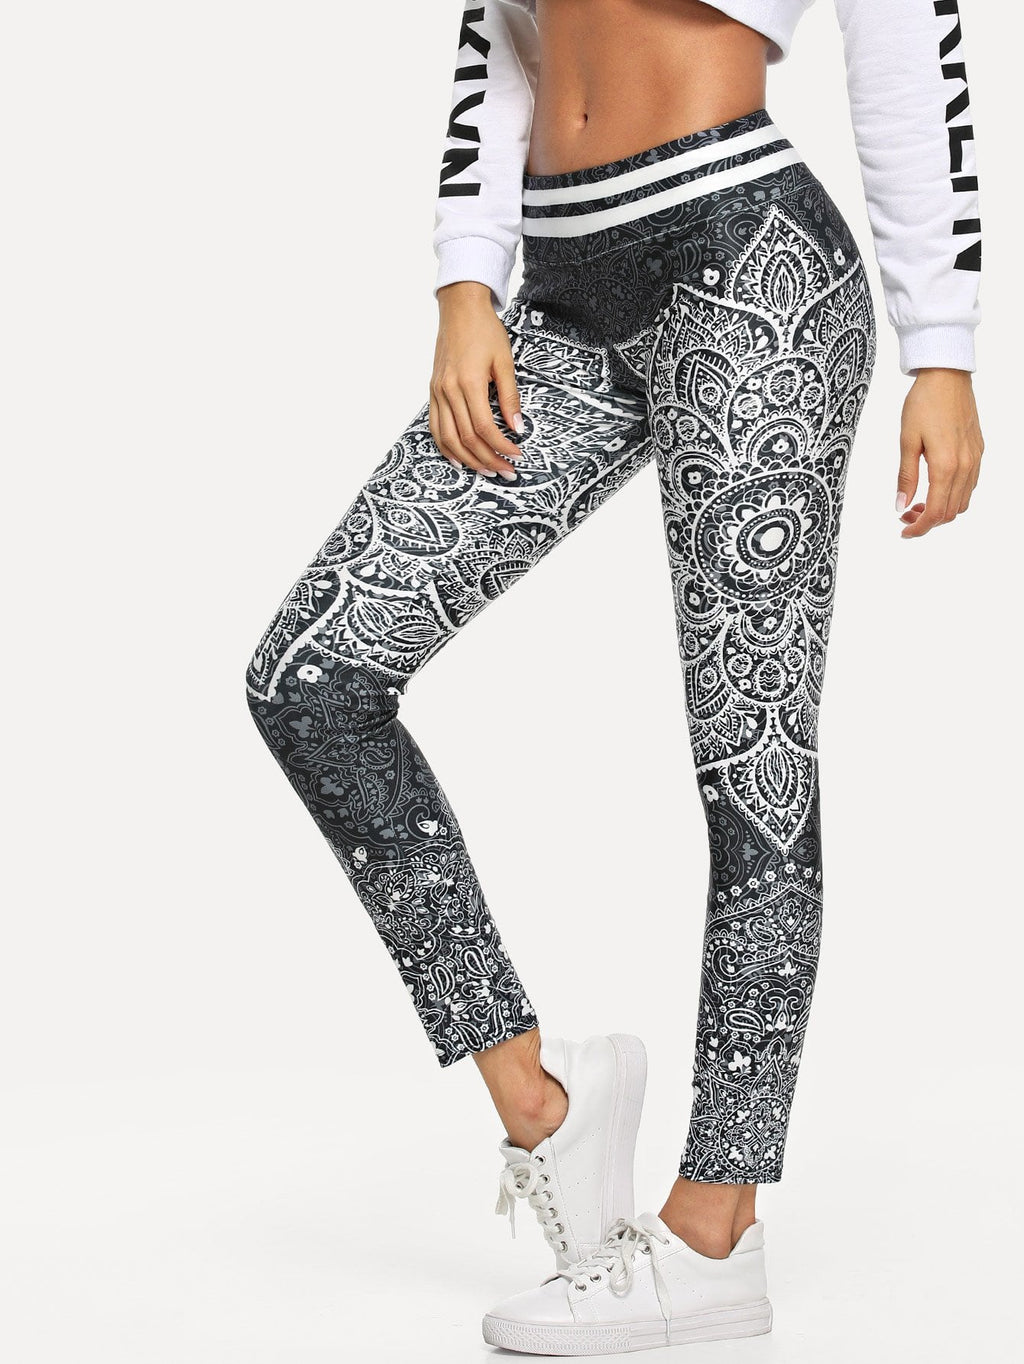 Schmale Leggings mit Paisley Muster